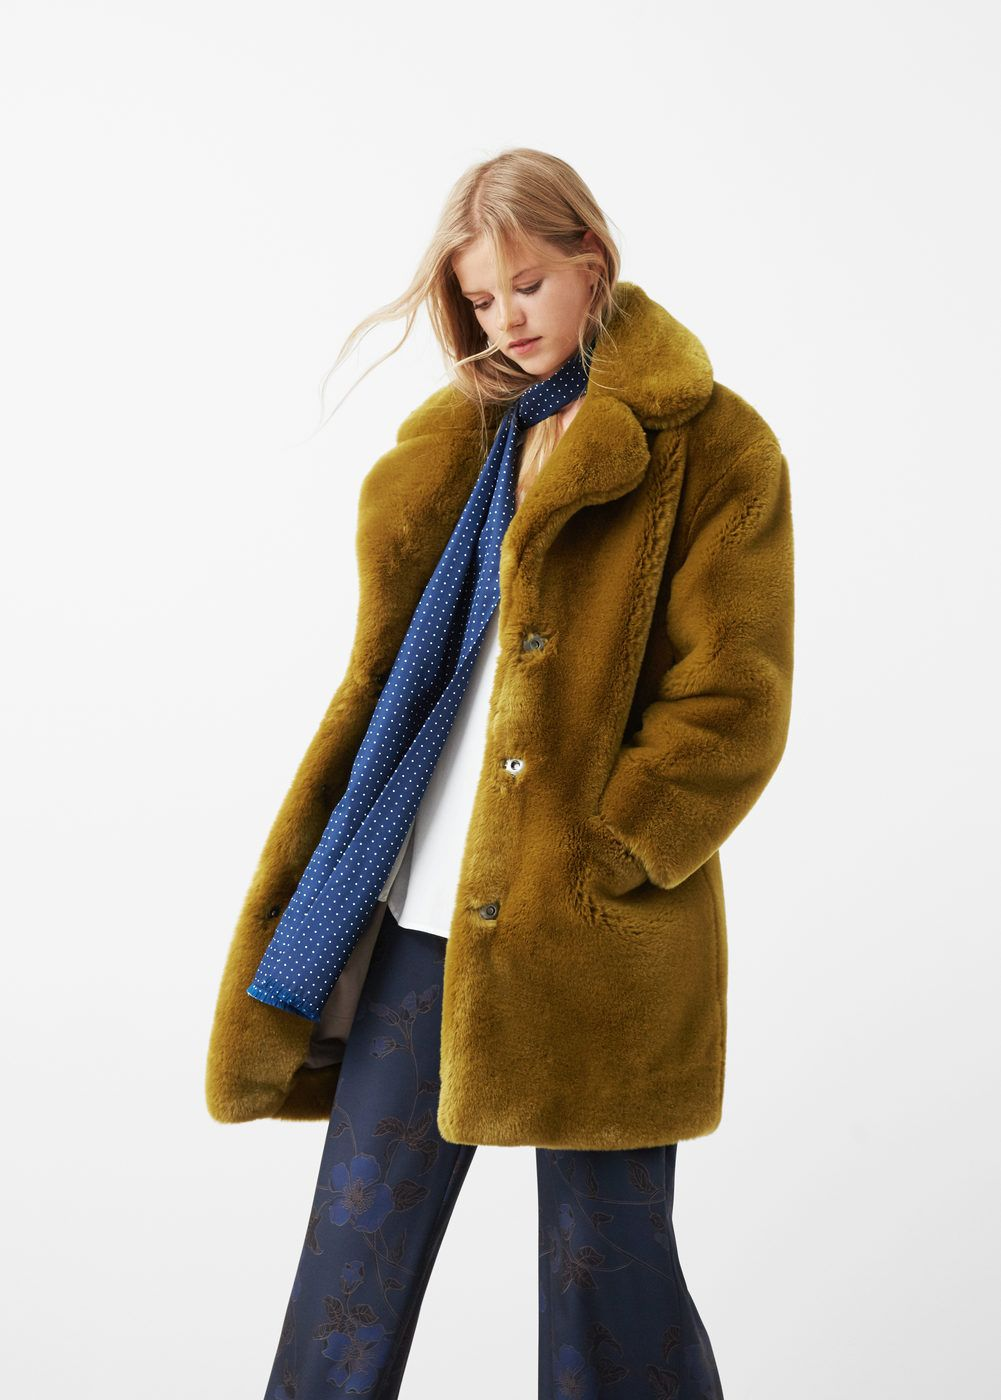 Faux fur coat - Women   Shopping Cart   Pinterest   Fur, Faux fur ... 29808f09d438